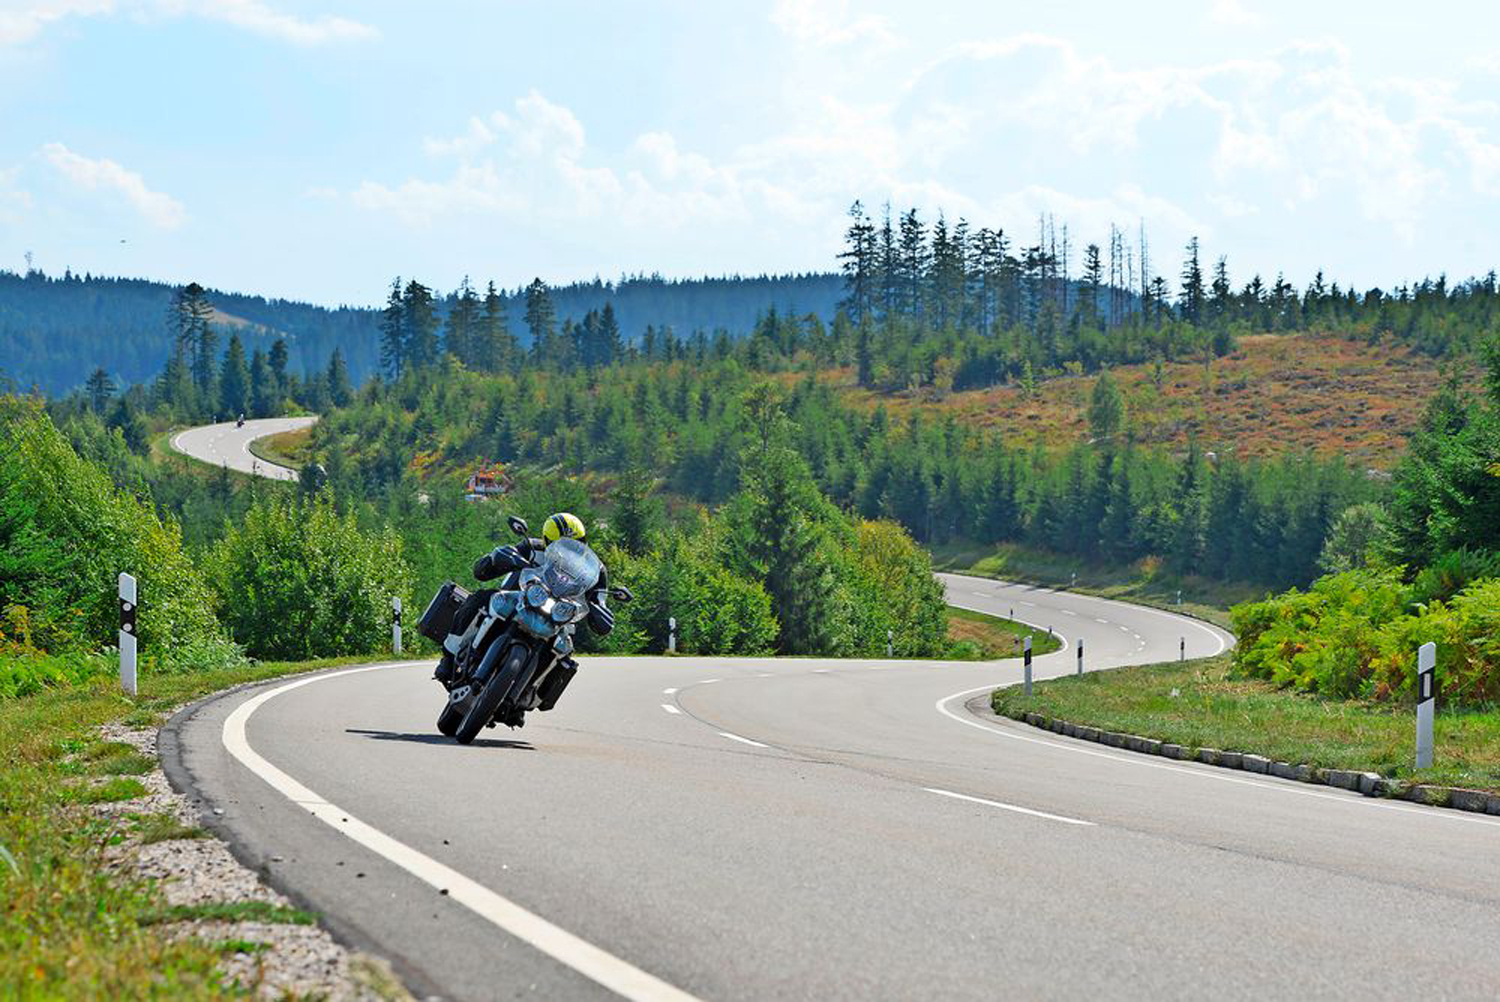 Roads of the Black Forest are popular for a reason. Just look at them...